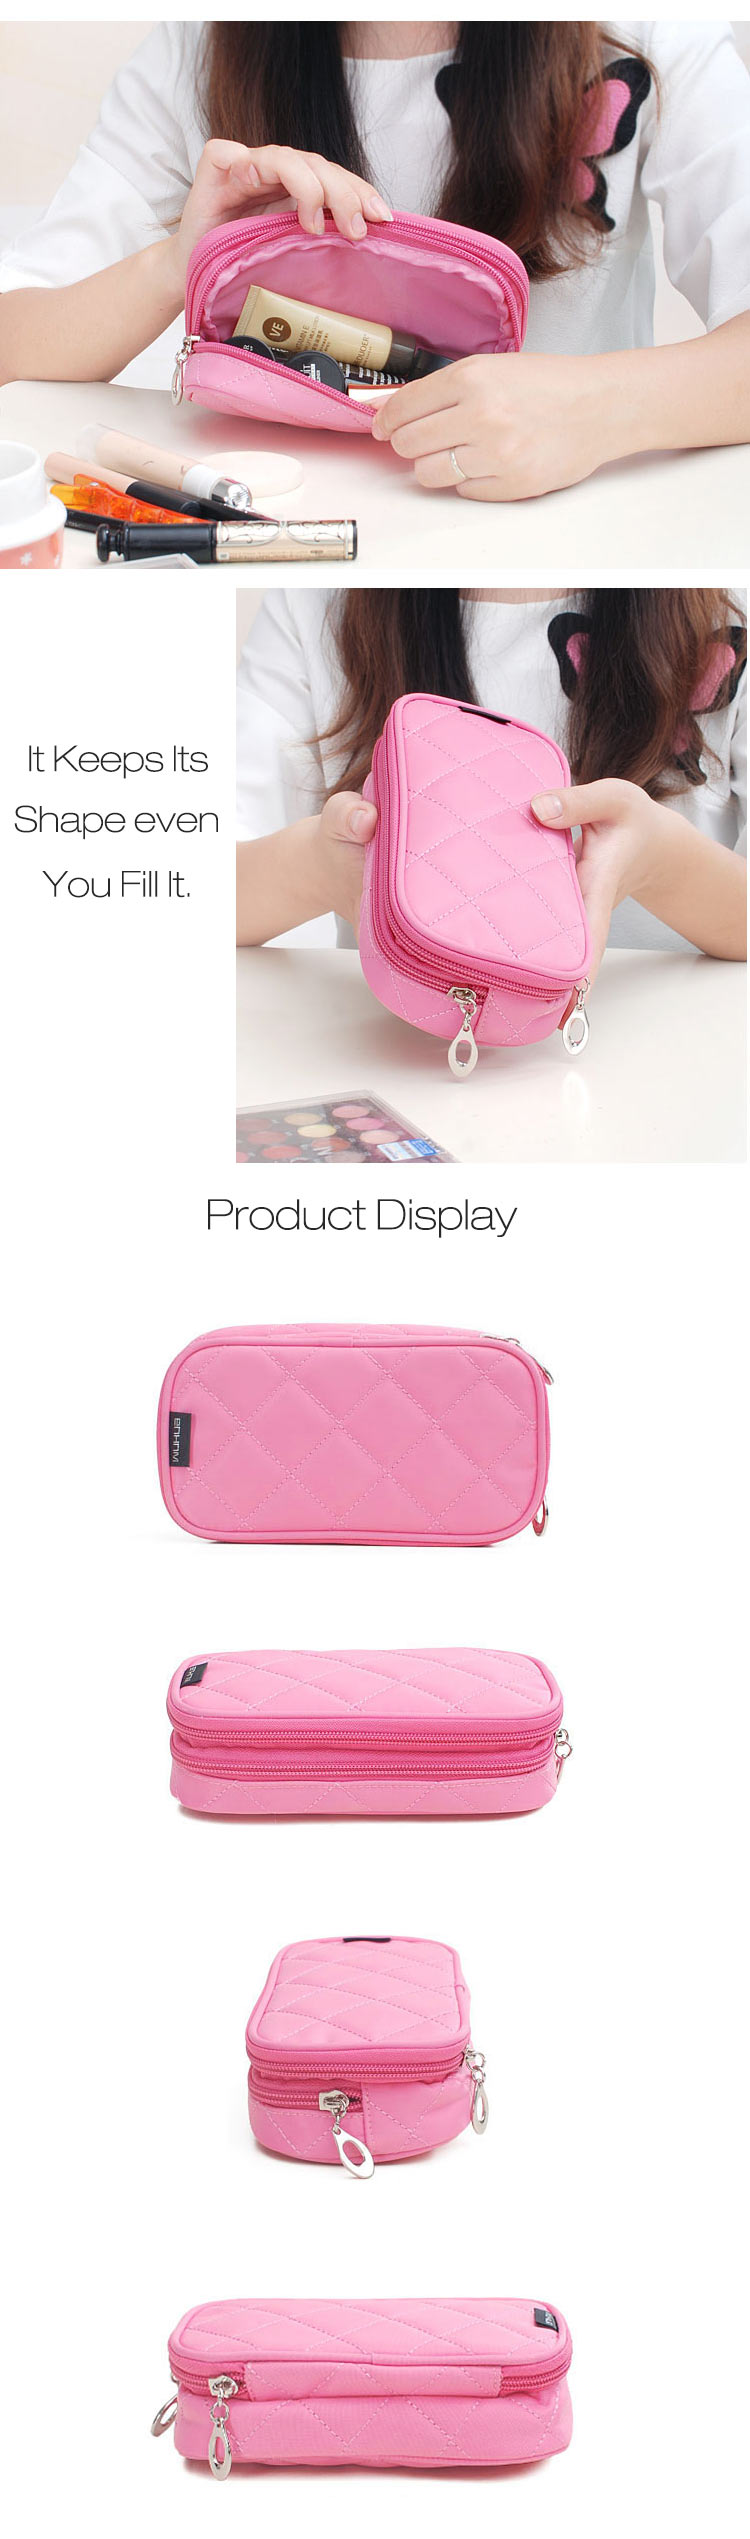 Honana HN-B56 Portable 2 Layers Travel Storage Bag Colorful Cosmetic Makeup Organizer Toiletry Storage Bag